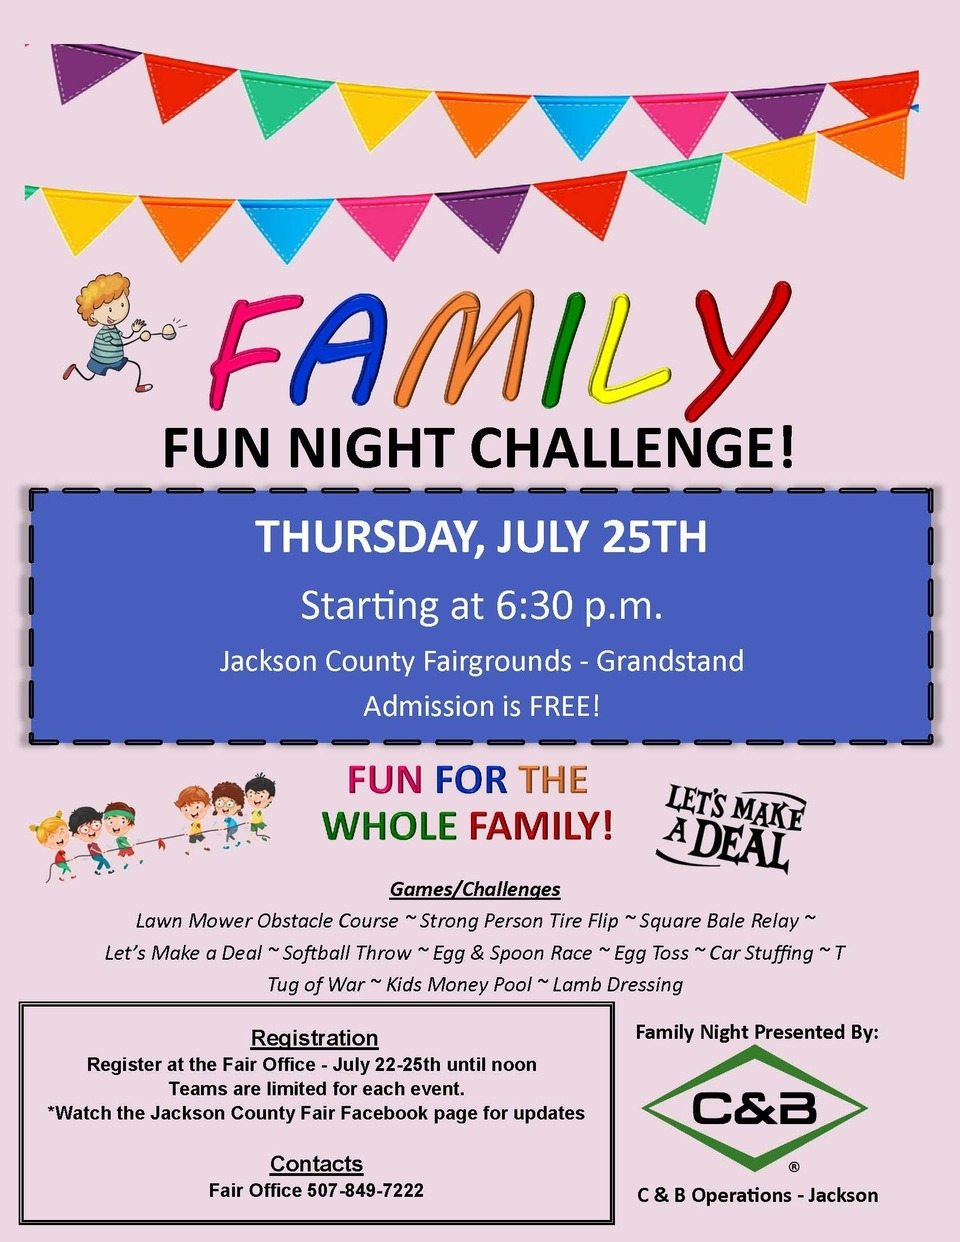 Family fun night challenge